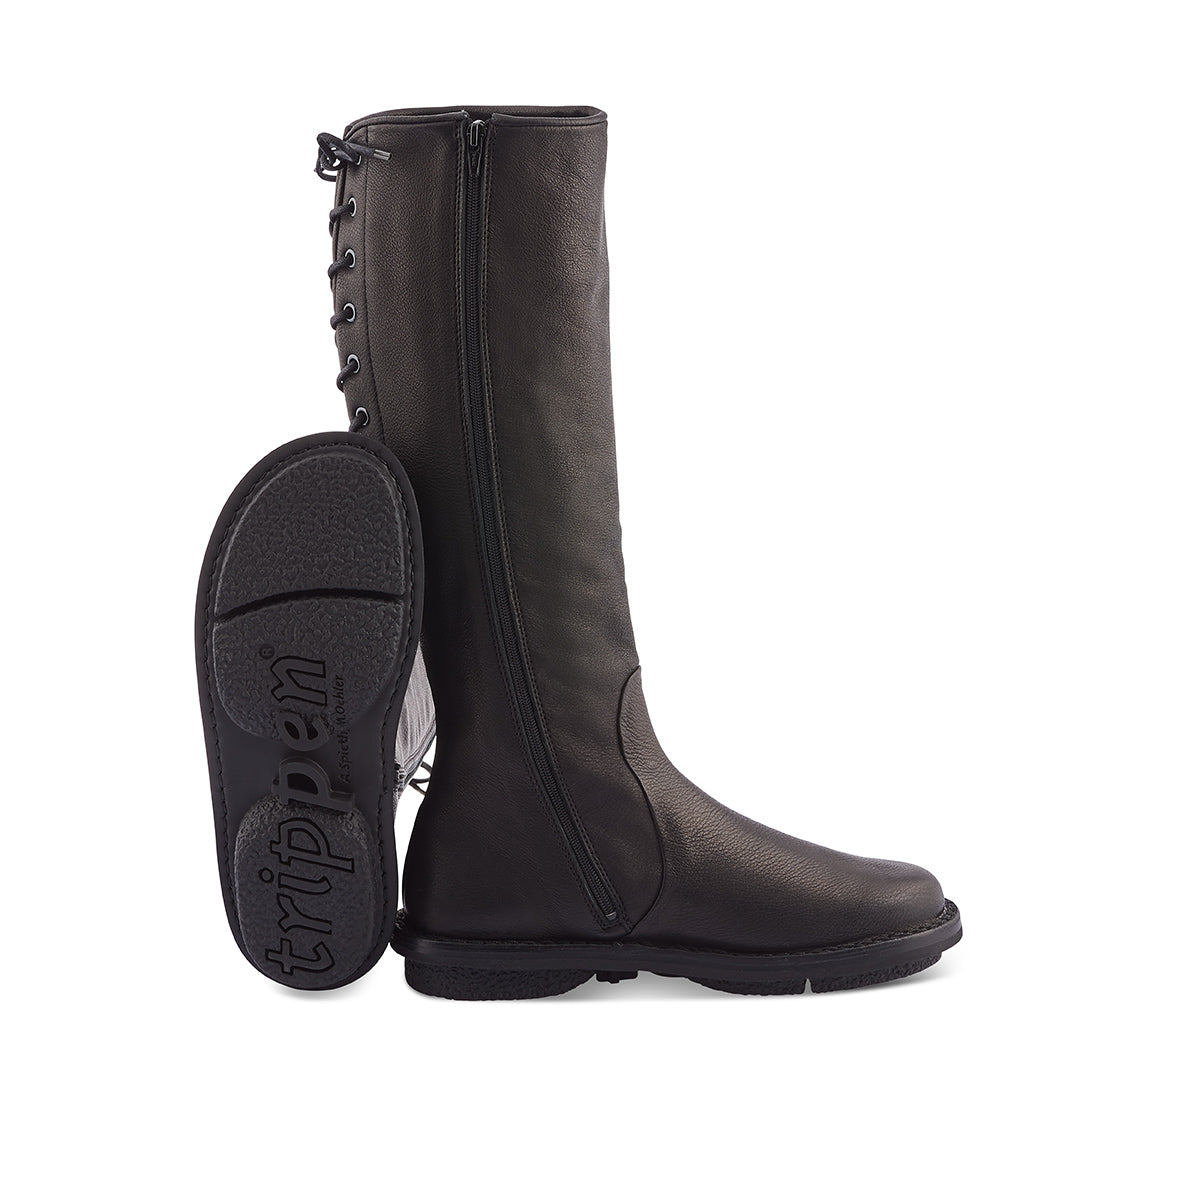 Medea - our most popular boot from last winter - returns to soleDevotion in the most exquisite calf leather upper. This fully leather lined boot features an inner zip and rear lacing that allow for an excellent fit on different calf widths. The sturdy rubber sole provides amazing grip on any surface and the cork and leather insole ensures day-long comfort and support.